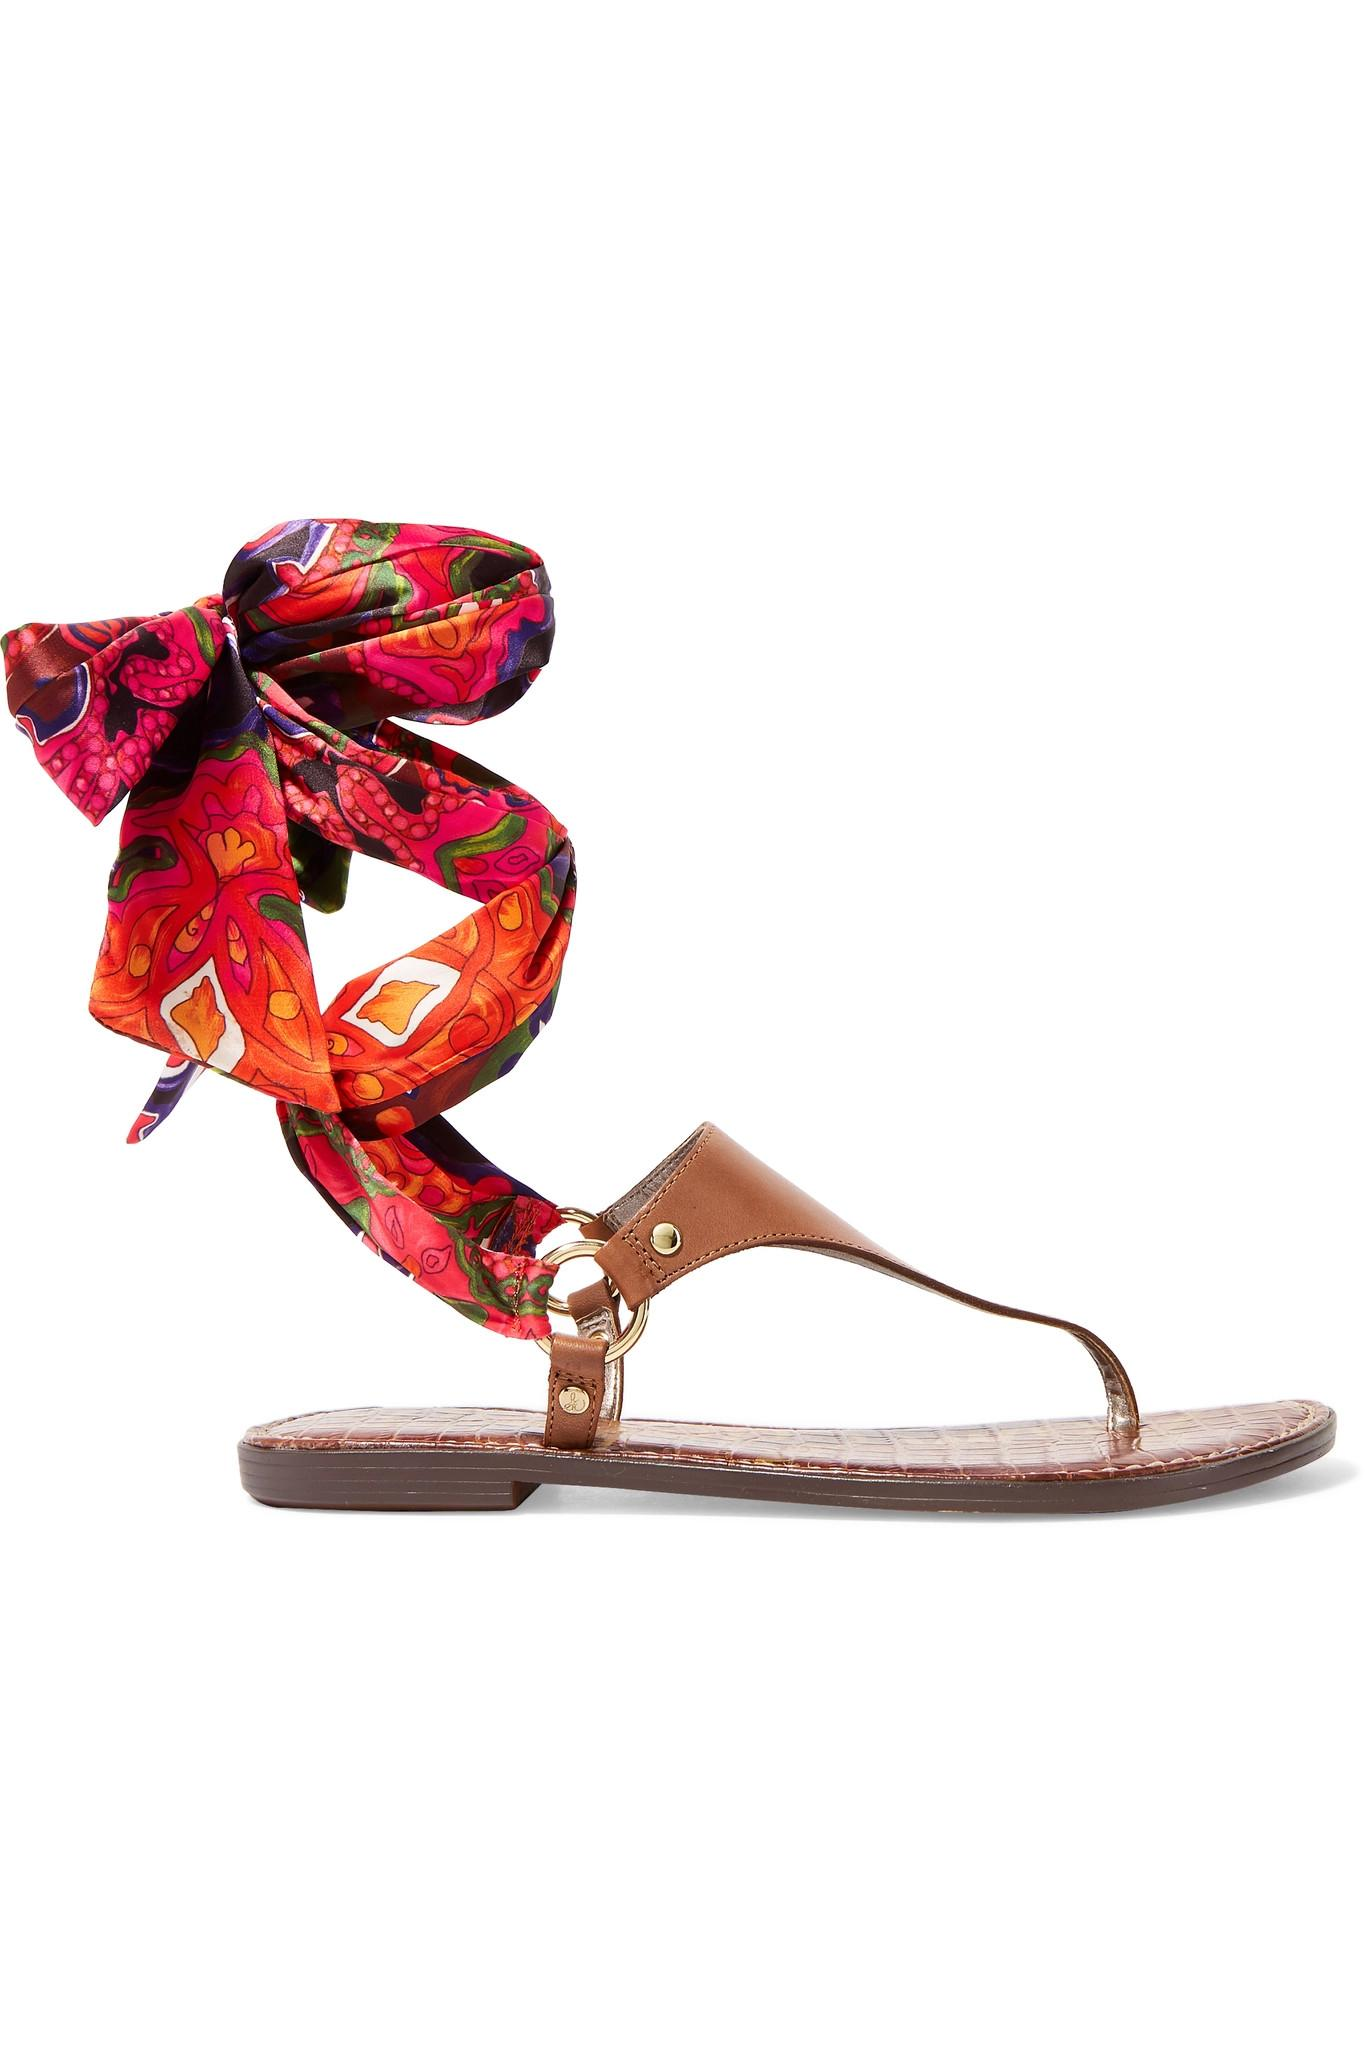 dcacfbb0f5e Lyst - Sam Edelman Giliana Leather And Printed Satin Sandals in Brown